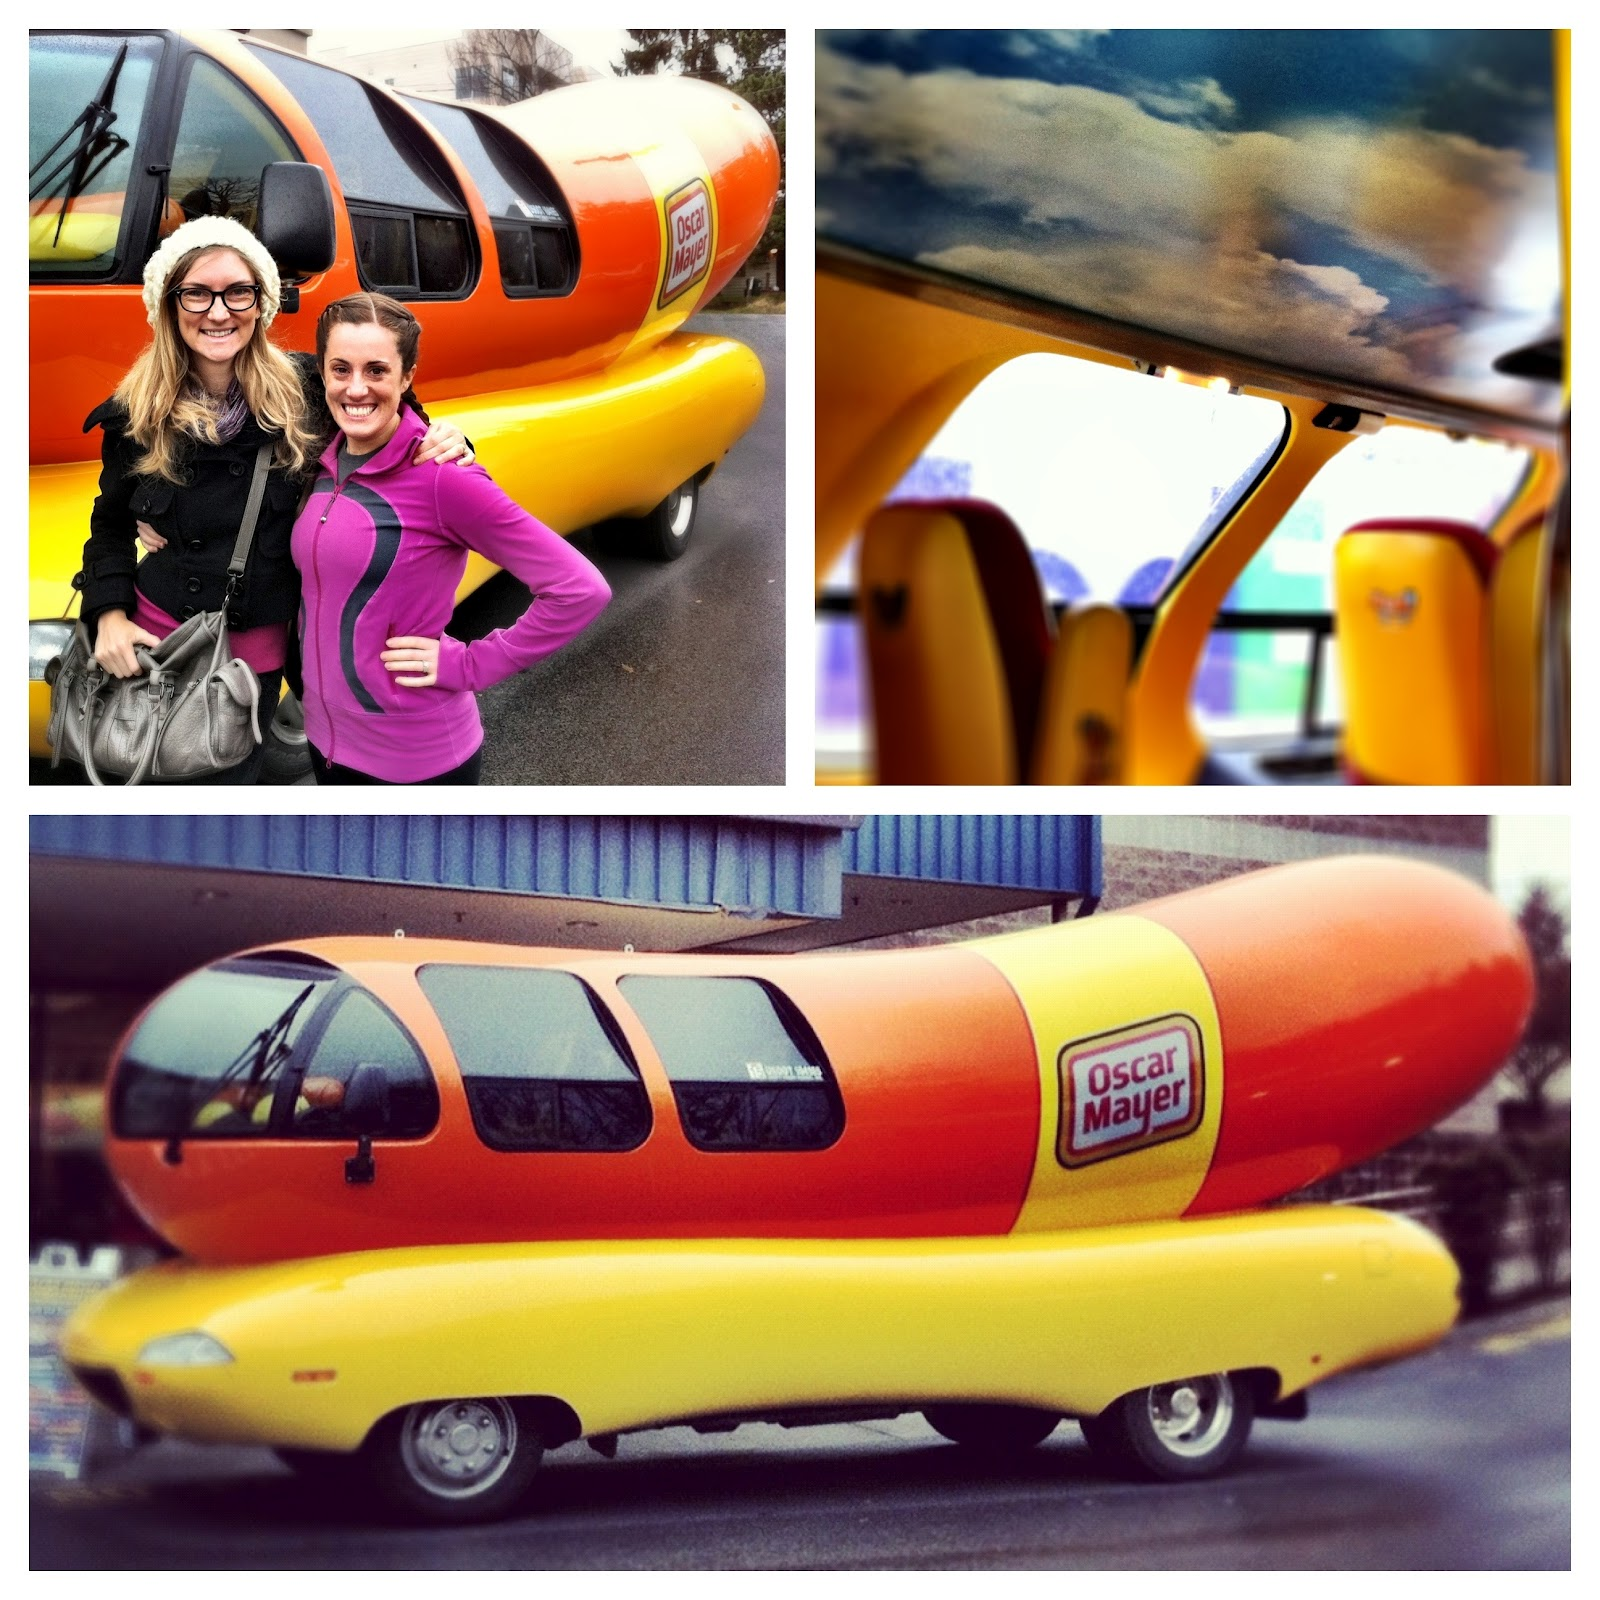 The 20Oscar 20Mayer 20Wienermobile likewise Auto Biografia moreover Mks Oscar Mayer Wienermobile In St George To Break Records For Most Wiener Whistles Played Simultaneously besides 3176188 Pequot Lakes Speech Team  petes Walker further Oscar Meyer Wienermobile Loses Sword Fight With Pole 1686016734. on inside wienermobile